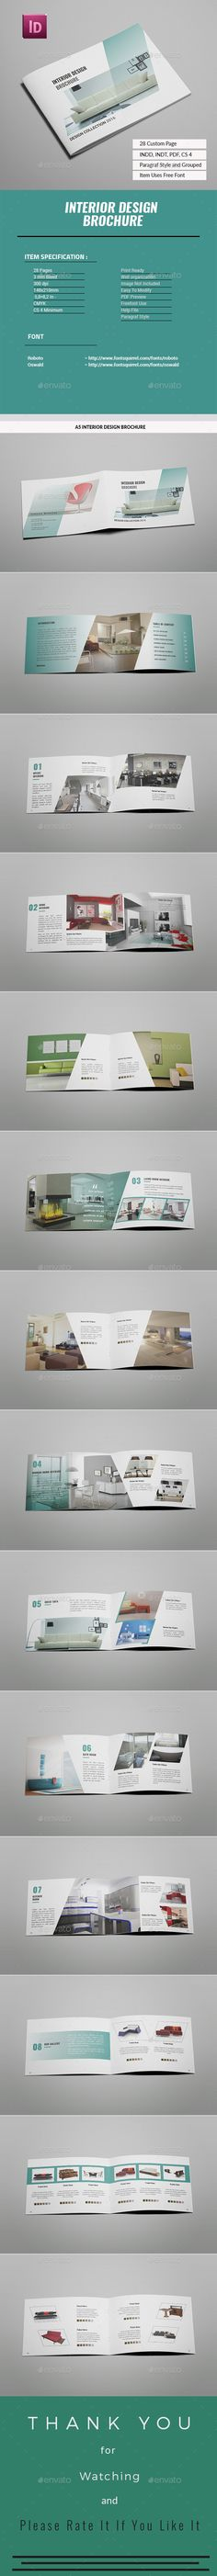 TM Square Company Brochure 16 Pages Square company, Brochures - interior design brochure template